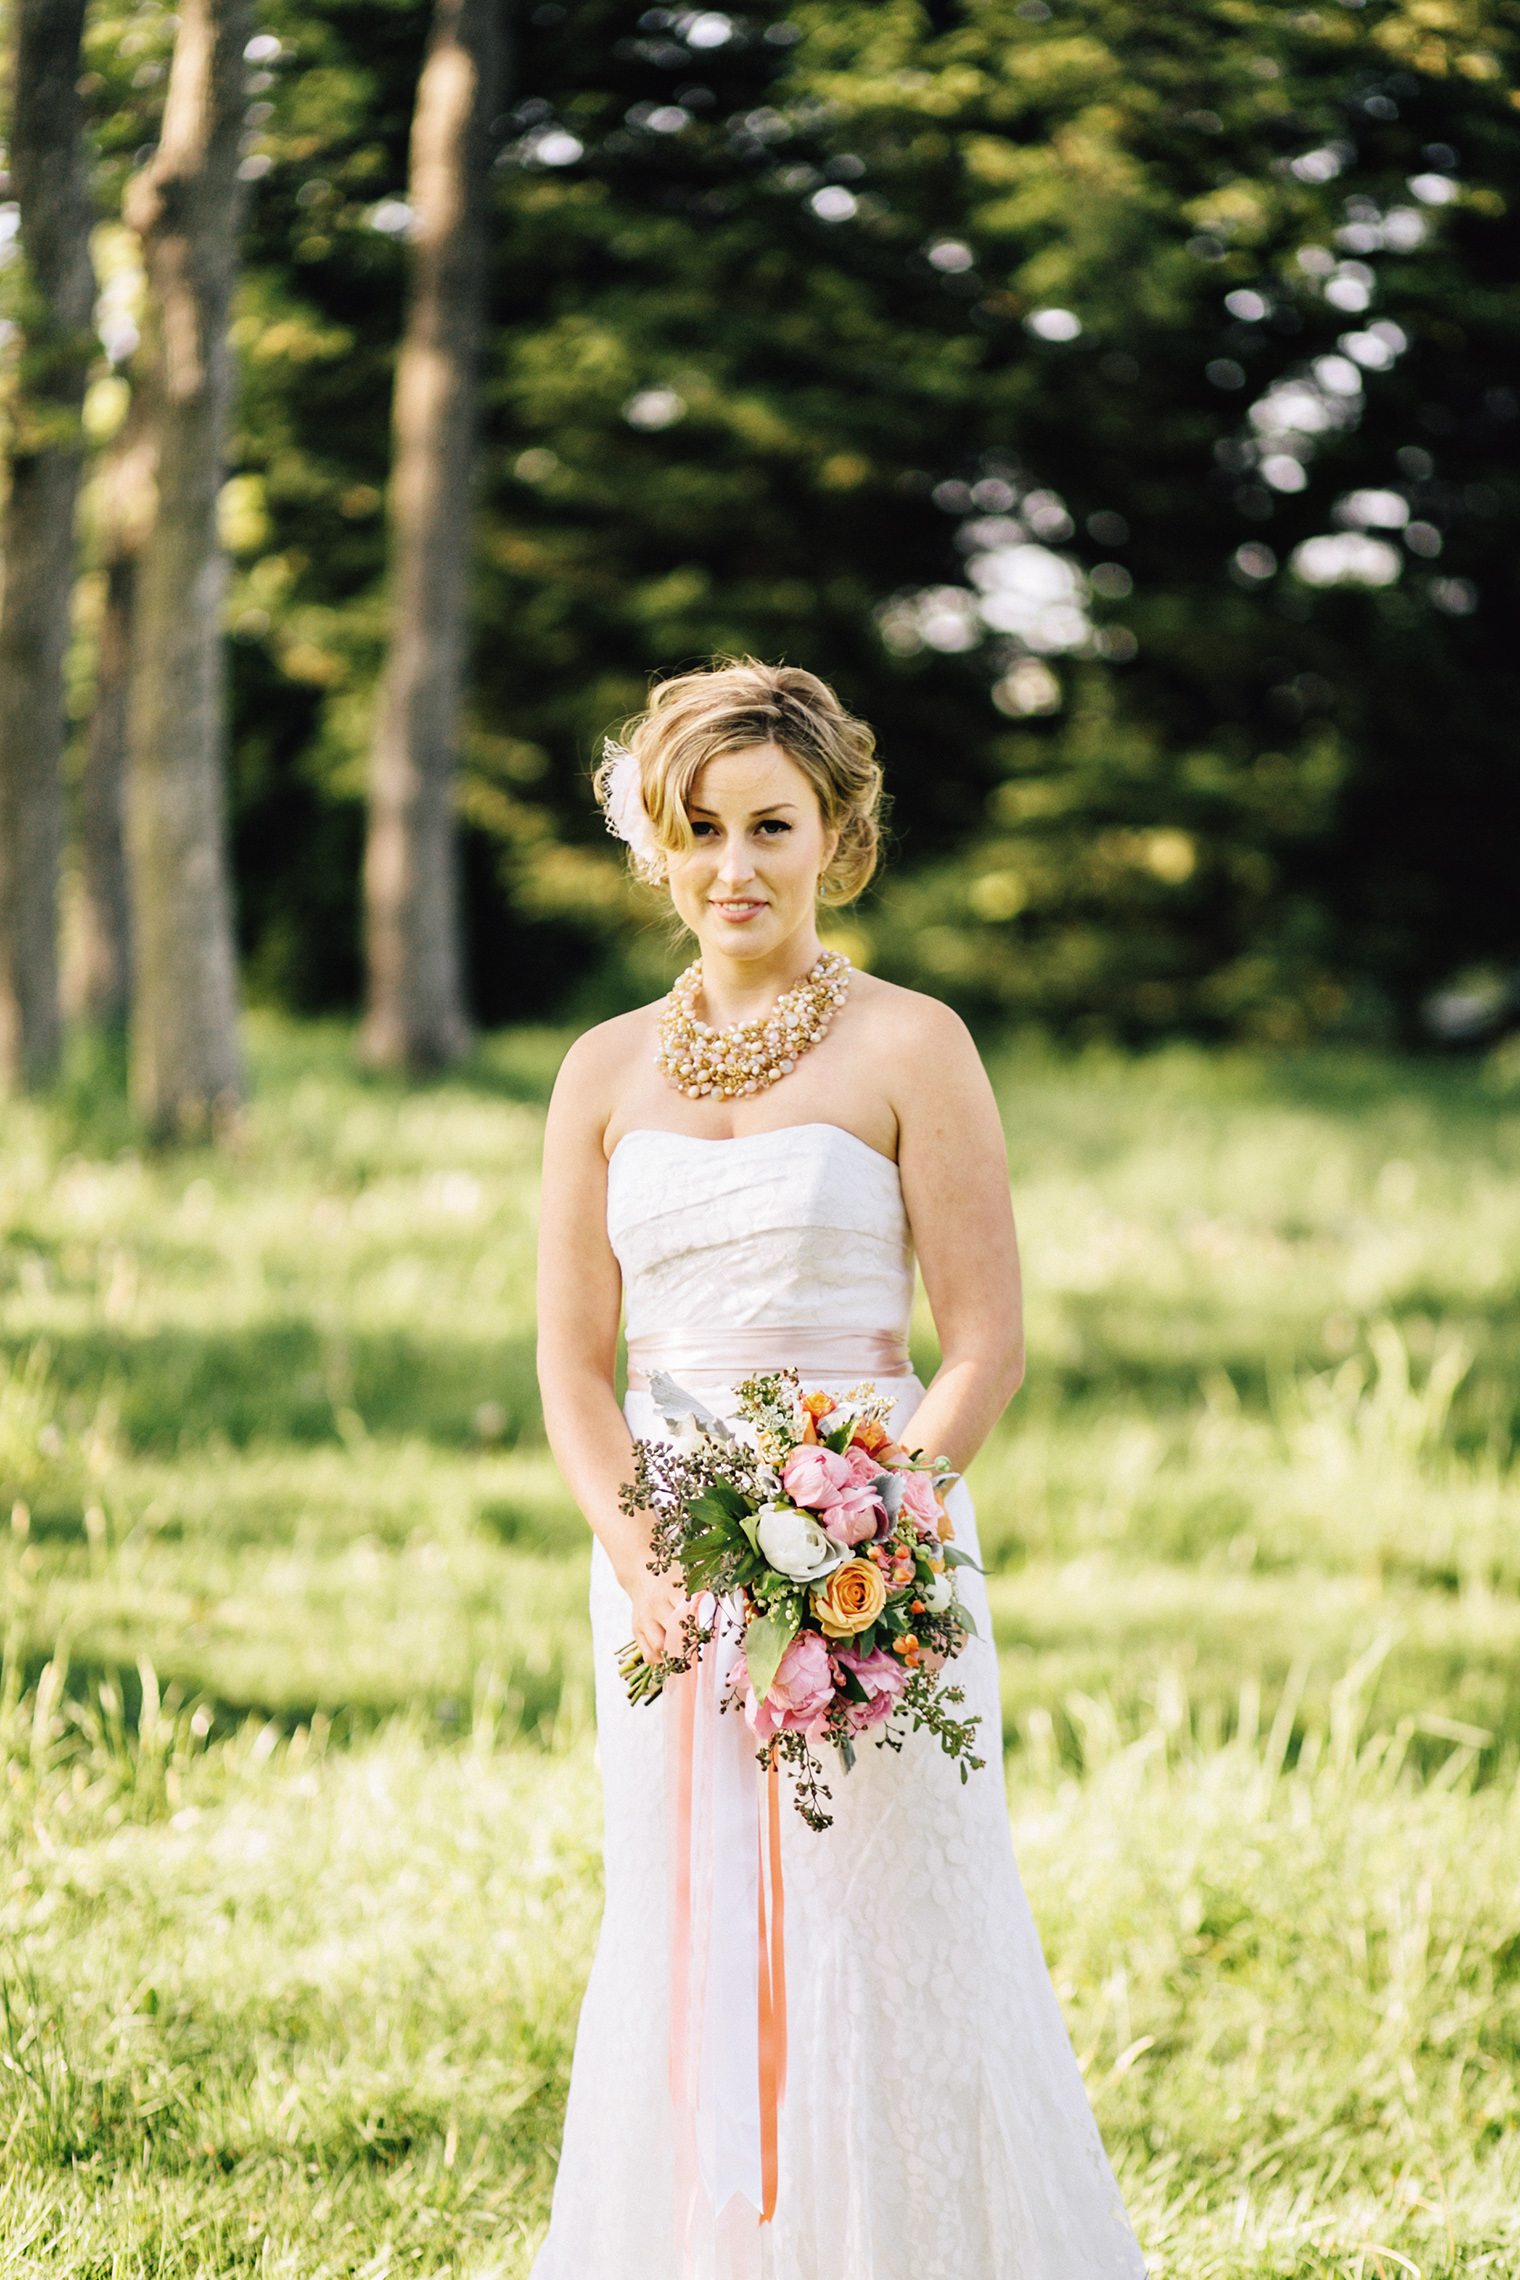 wedding photography by taylor roades in beacon hill park victoria bc